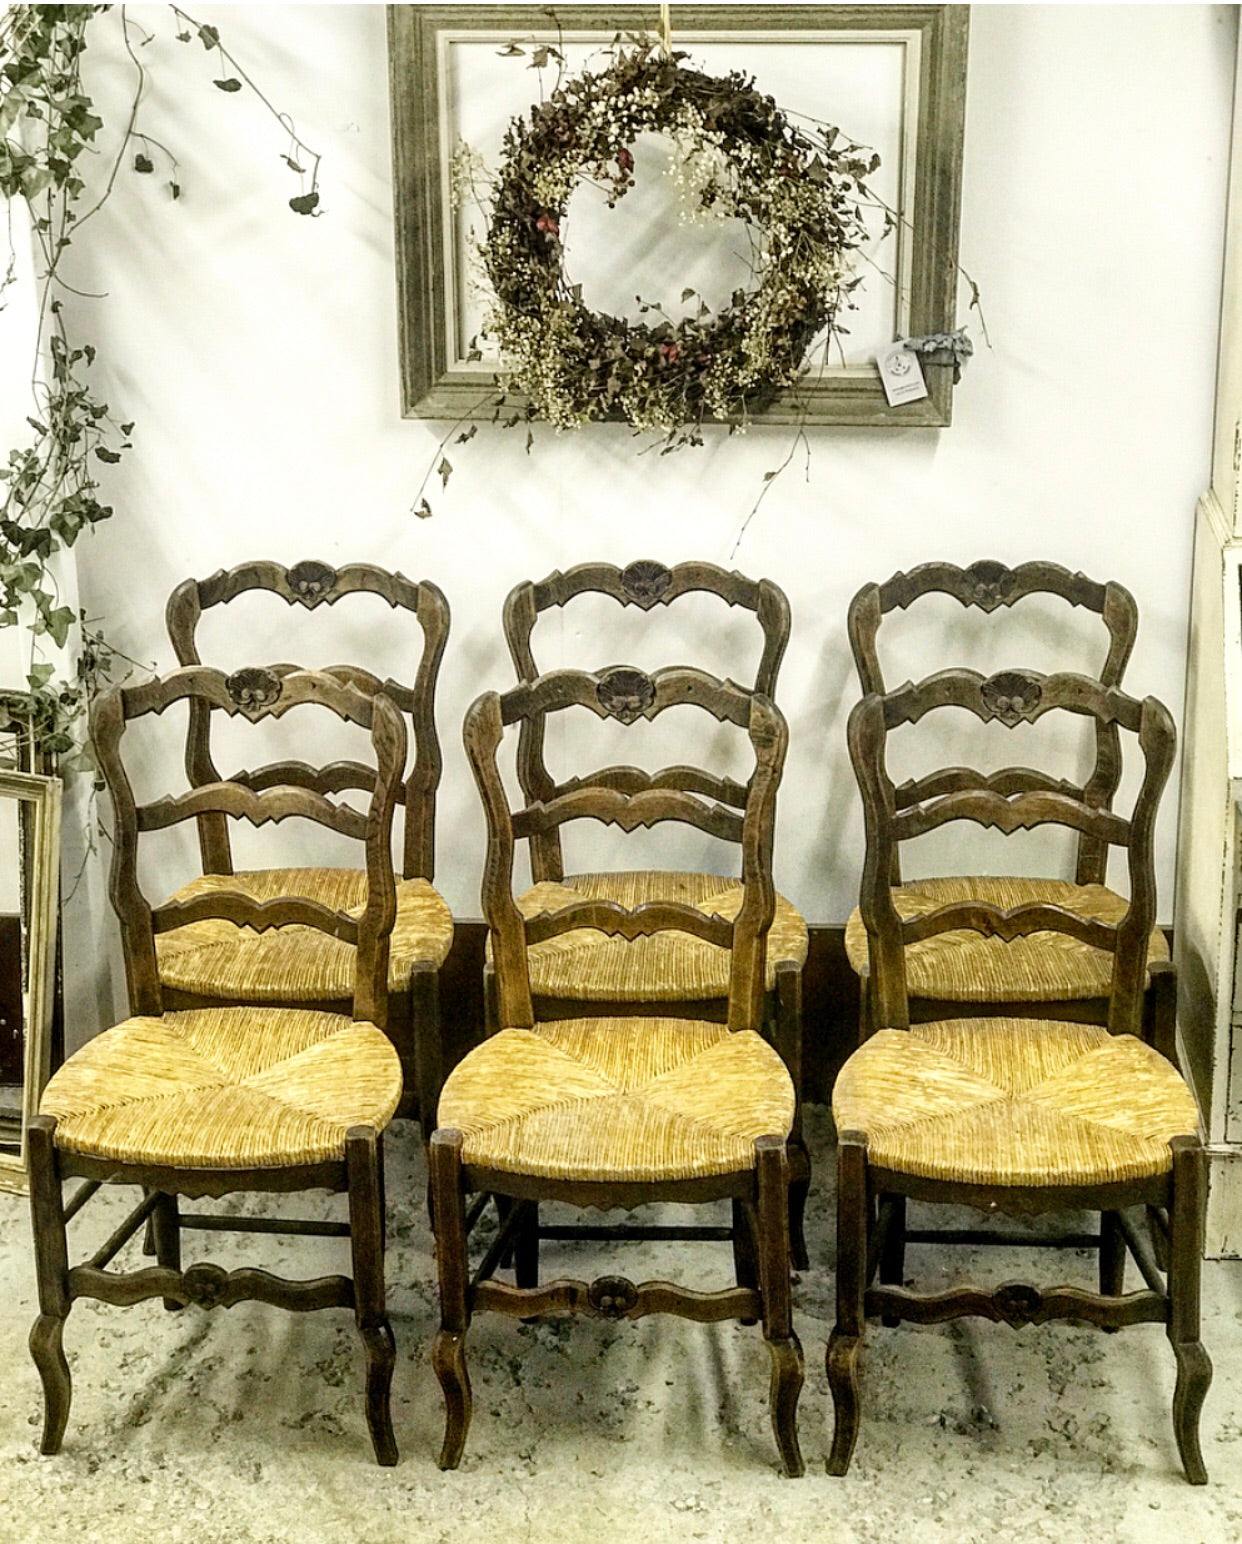 1940's French Rush Seat Provencal Dining Chairs